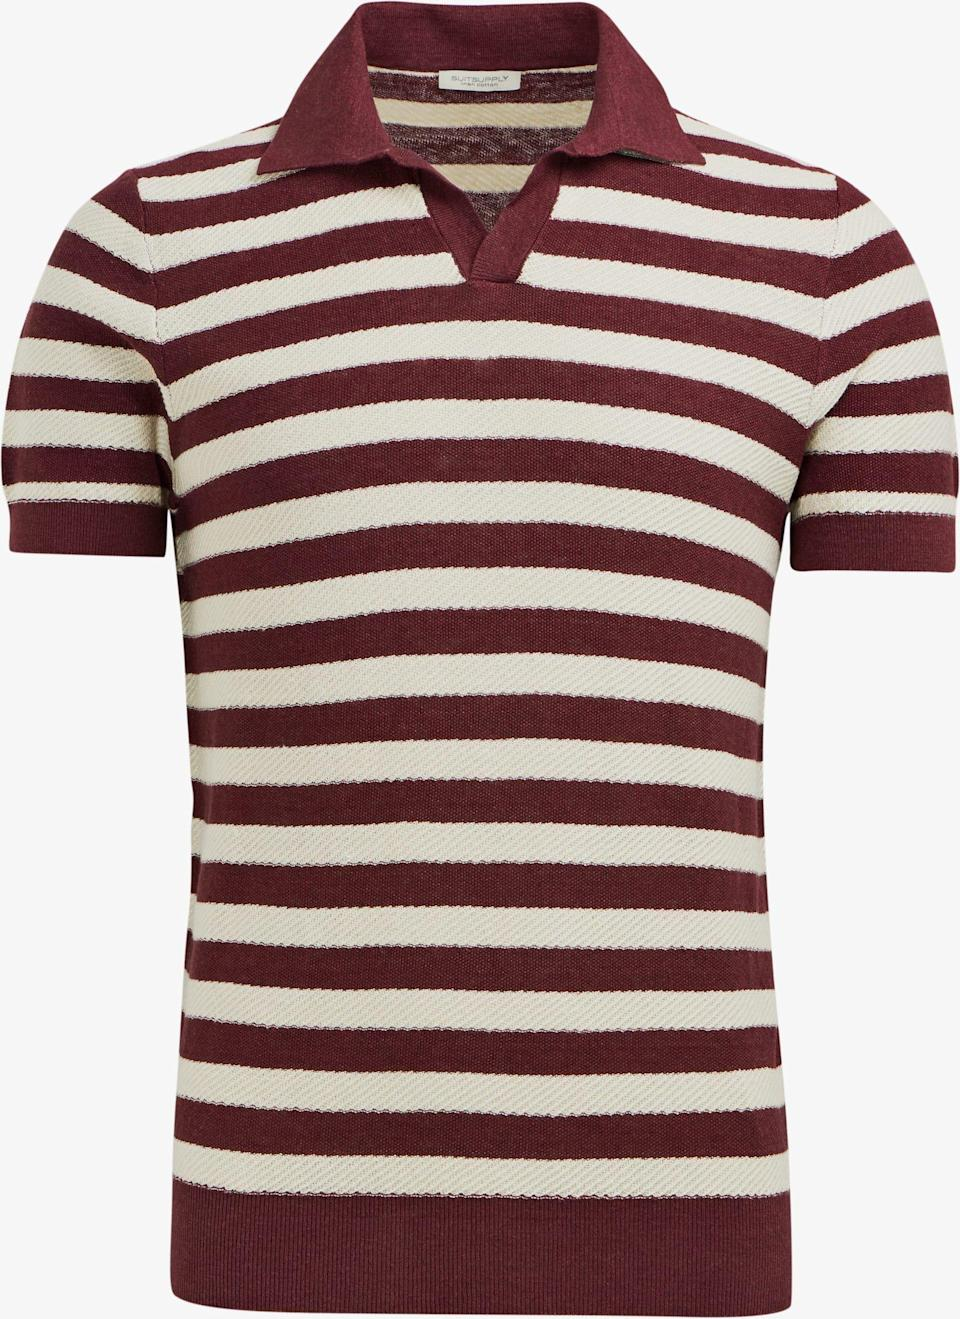 """<p><strong>Suitsupply</strong></p><p>suitsupply.com</p><p><strong>$47.00</strong></p><p><a href=""""https://outlet-us.suitsupply.com/en_US/knitwear/burgundy-stripe-polo/SW1053.html"""" rel=""""nofollow noopener"""" target=""""_blank"""" data-ylk=""""slk:Buy"""" class=""""link rapid-noclick-resp"""">Buy</a></p>"""